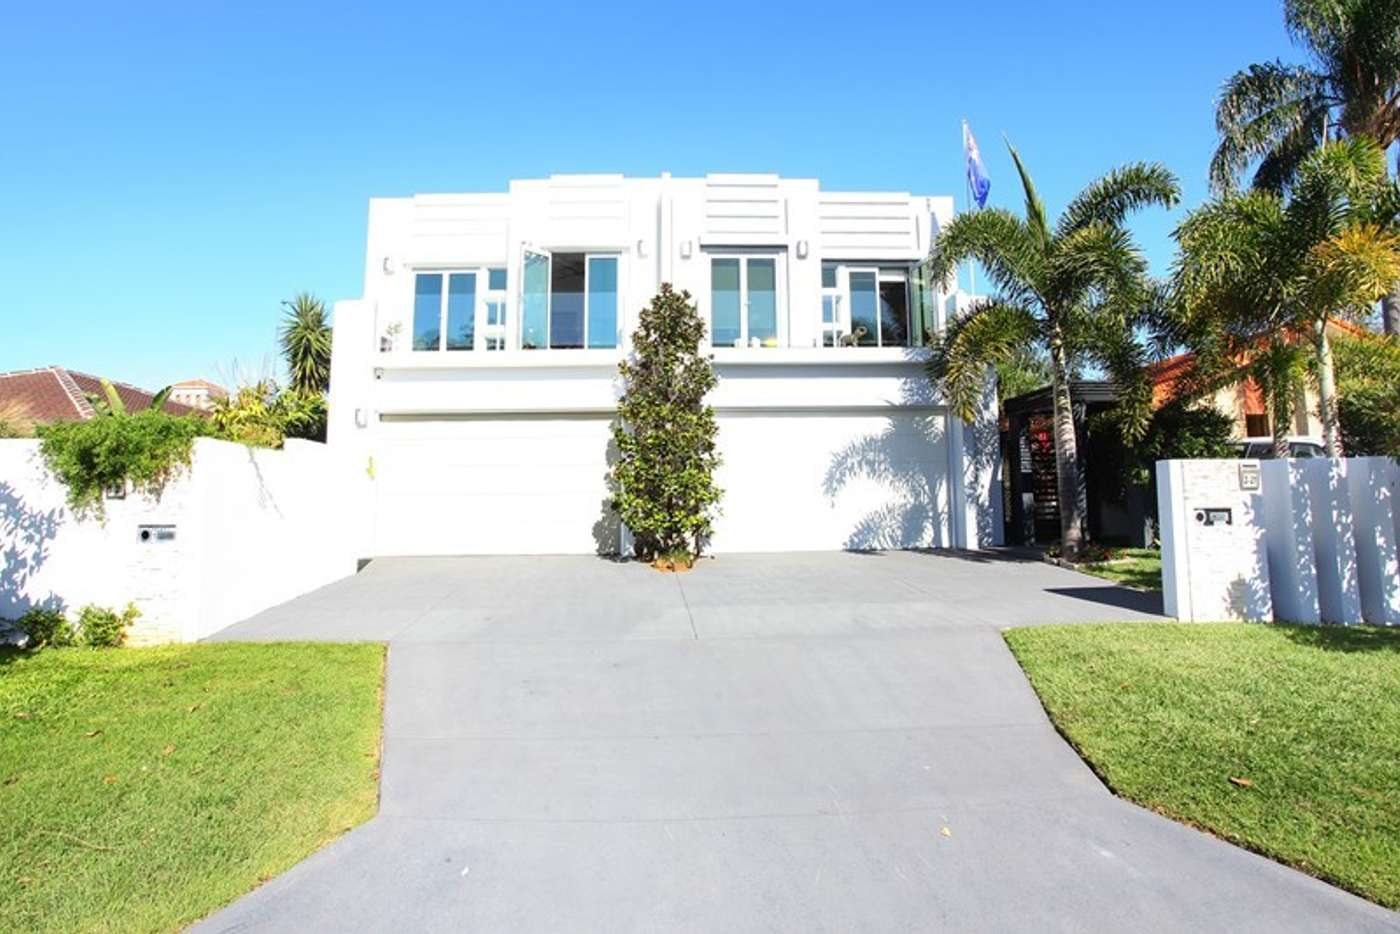 Main view of Homely villa listing, 2/21 Wildwood Court, Surfers Paradise QLD 4217